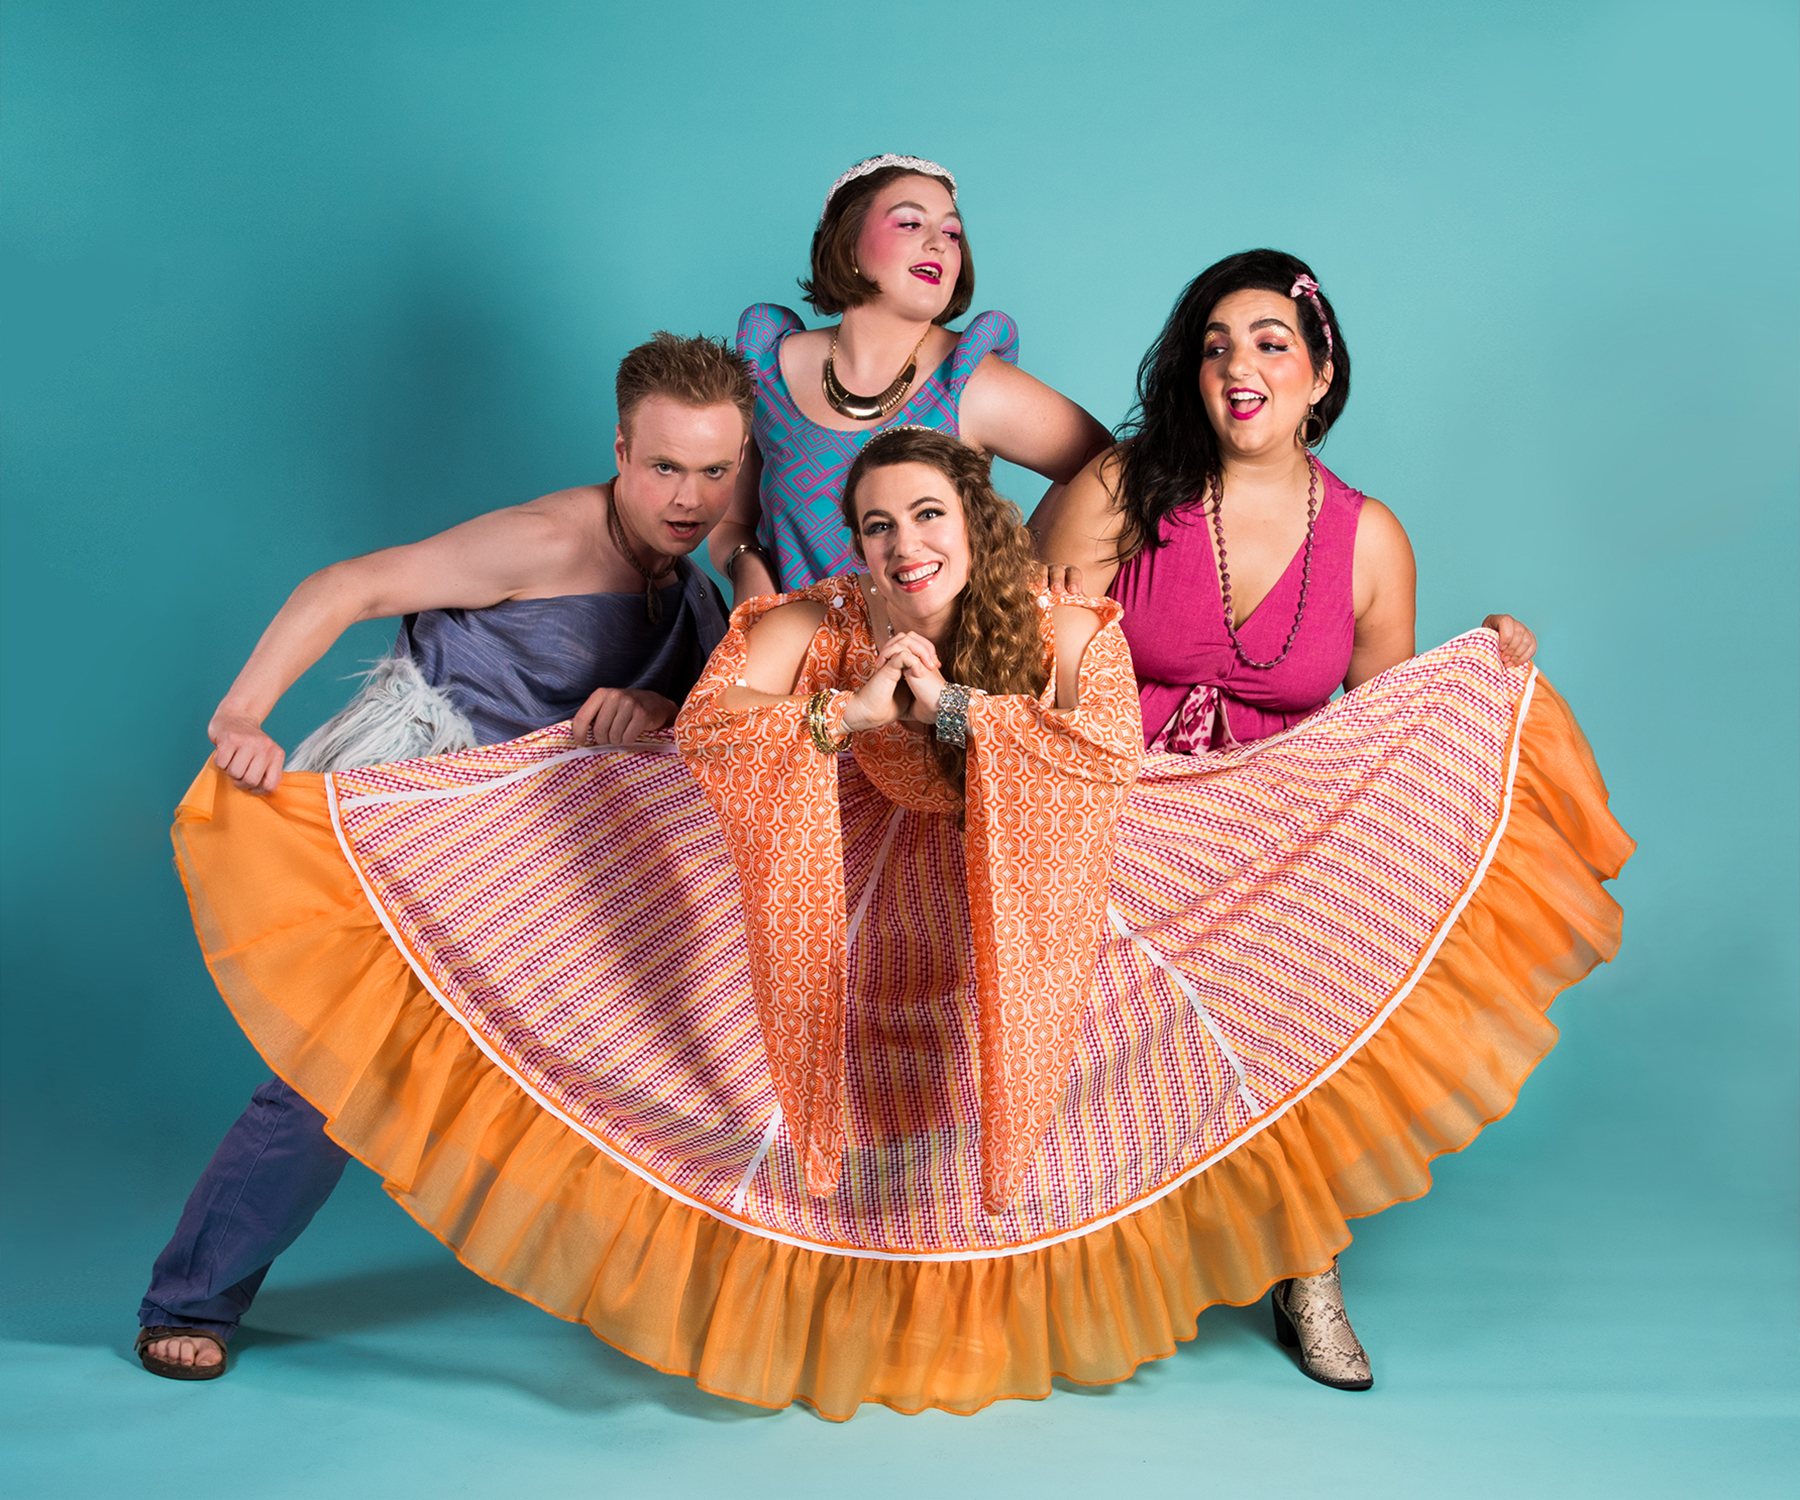 Pictured: Scott Scholes, Ella Ruth Francis, Kimberley Cohan, Danya El-Kurd. Photo by Lois Tema.